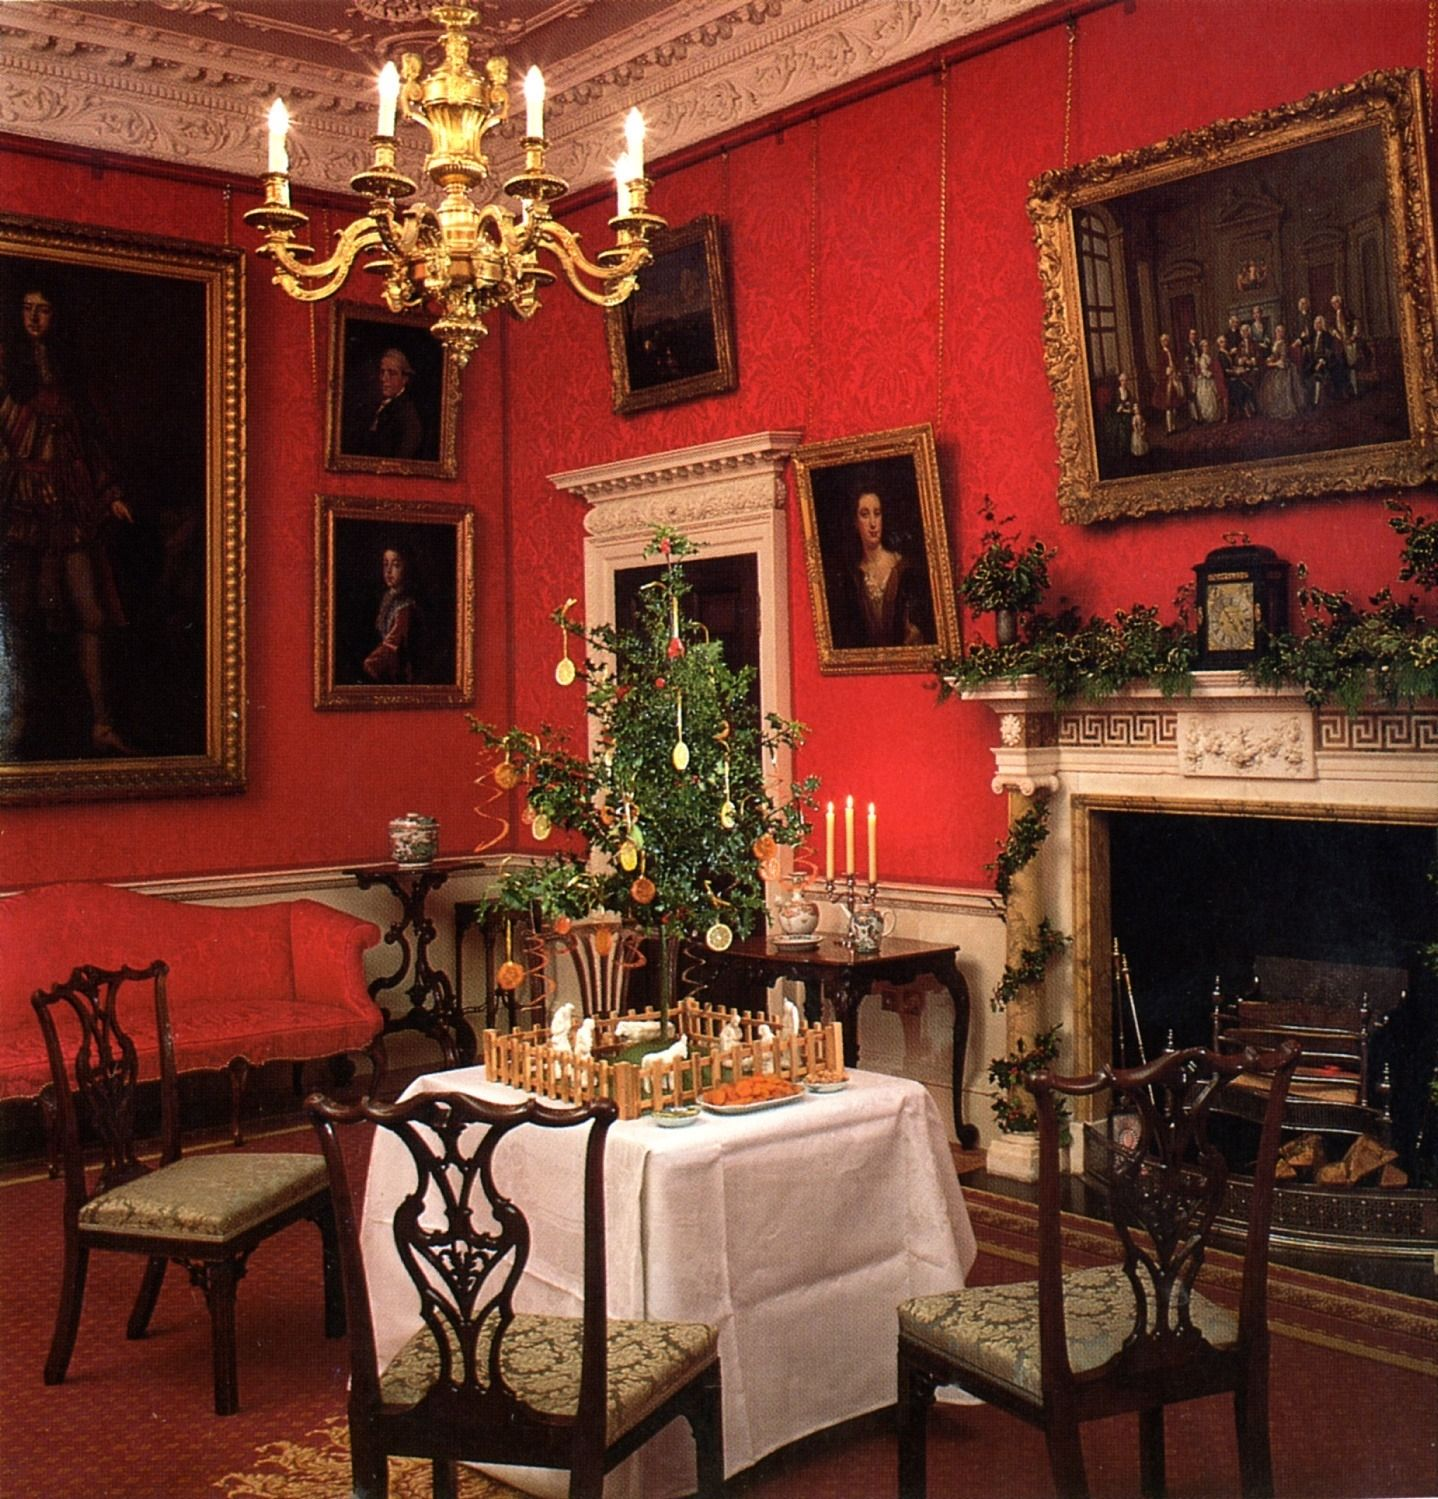 Keeping Christmas All The Year: This Is The Type Of Tree That Fairfax House Recreate Every